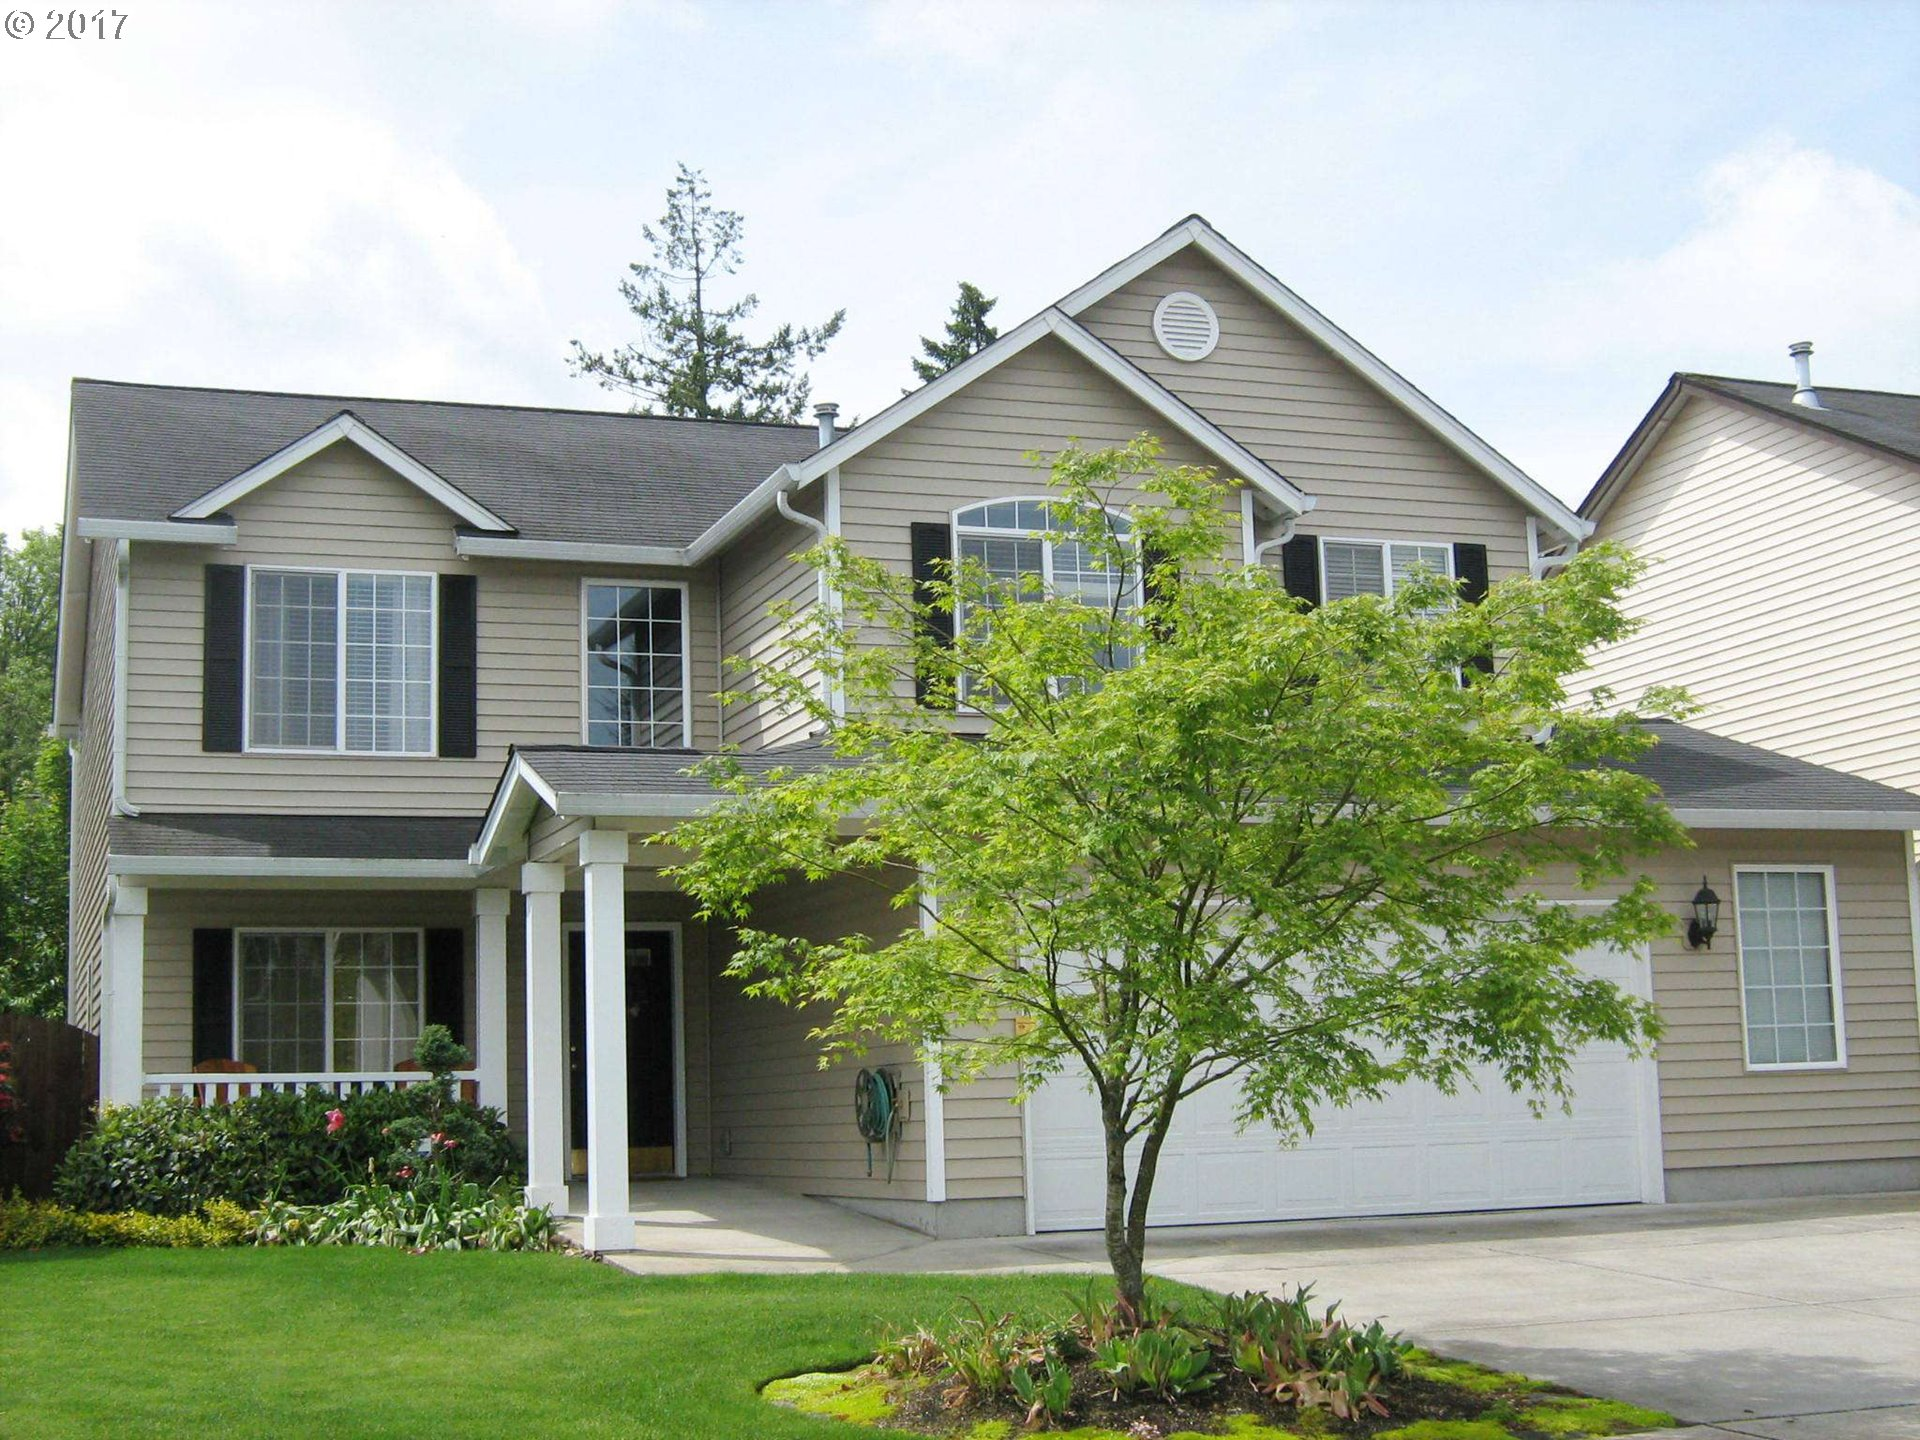 515 NW 147TH ST, Vancouver, WA 98685